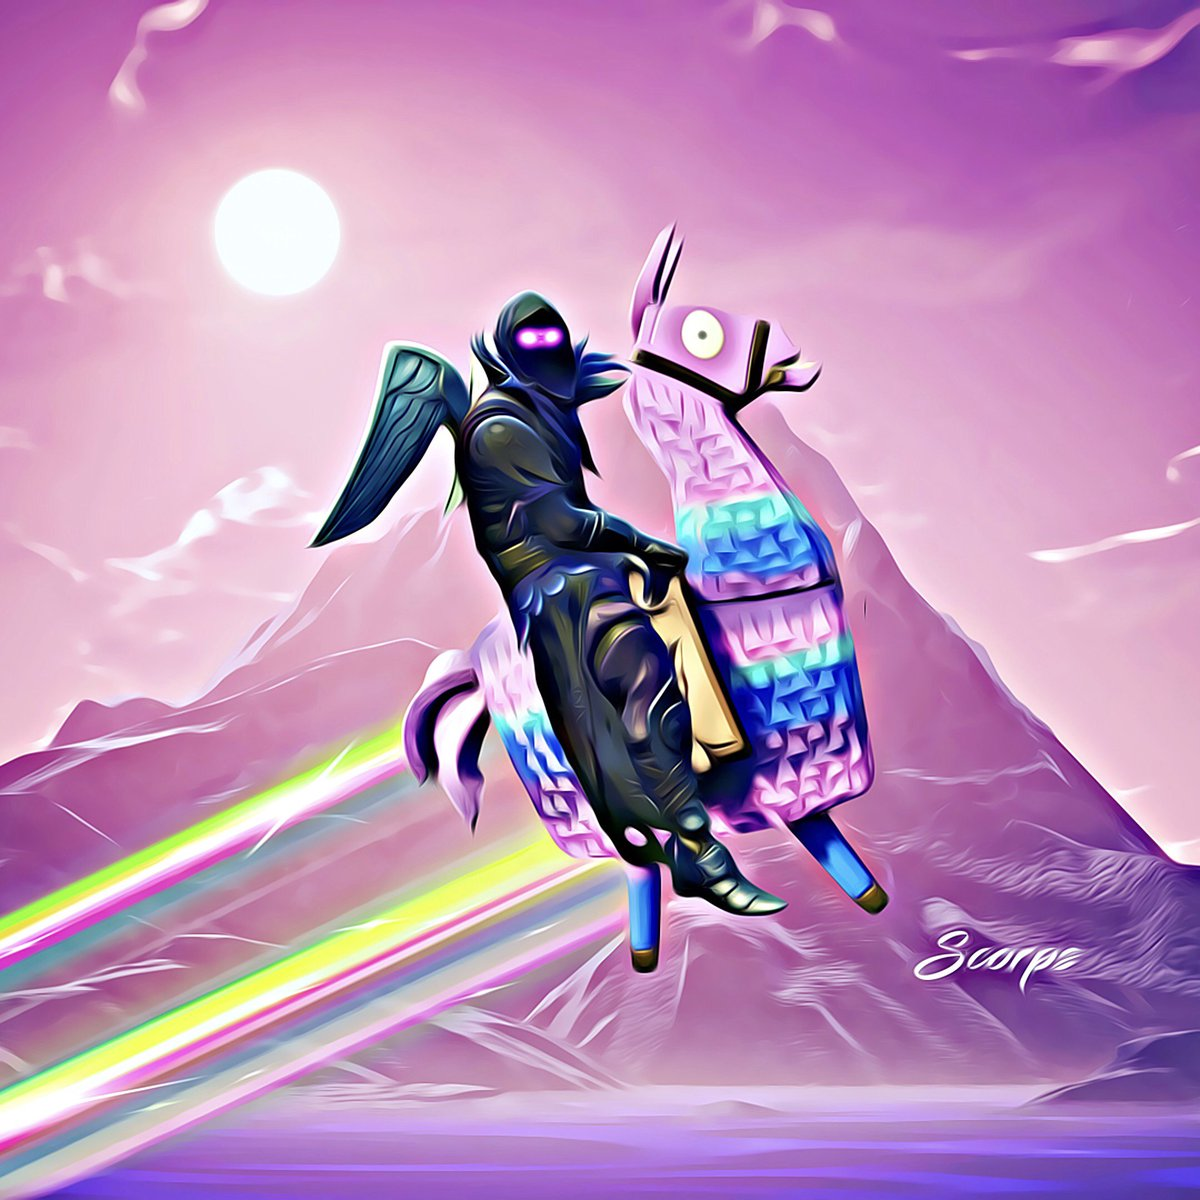 Scorps on twitter the raven ride the llama fortnitegame fortnite fortnitebr - Fortnite llama background ...